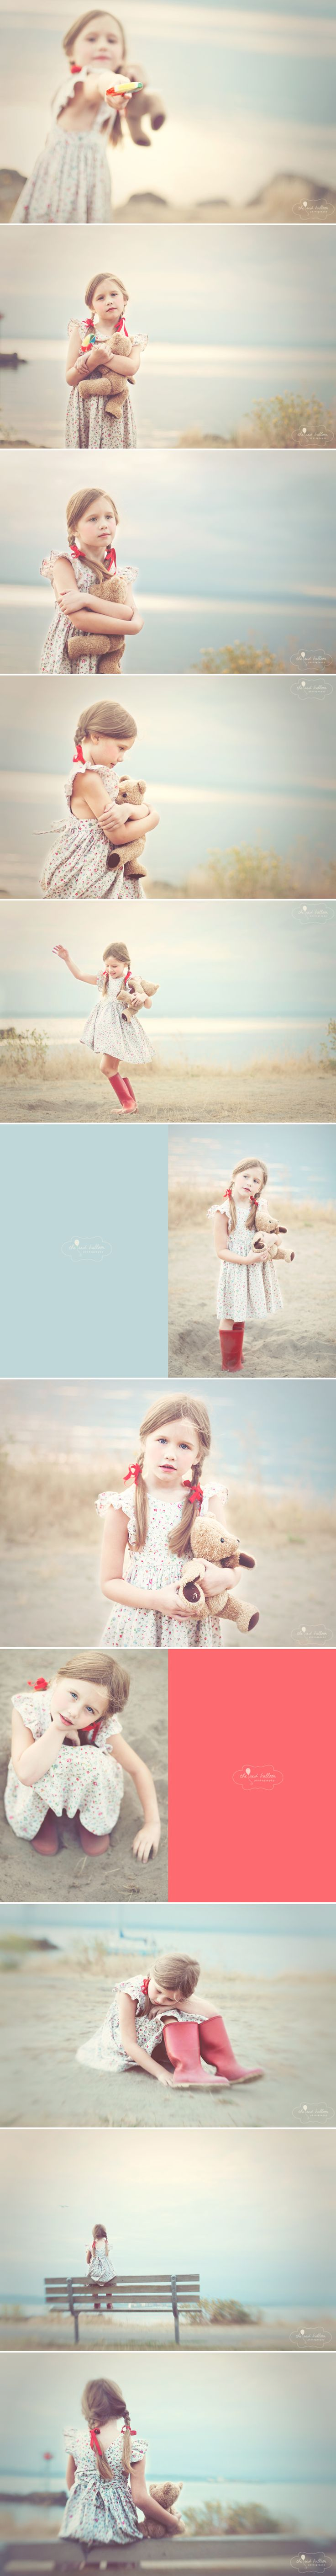 Love the use of colours with the blog post - awesome portrait series